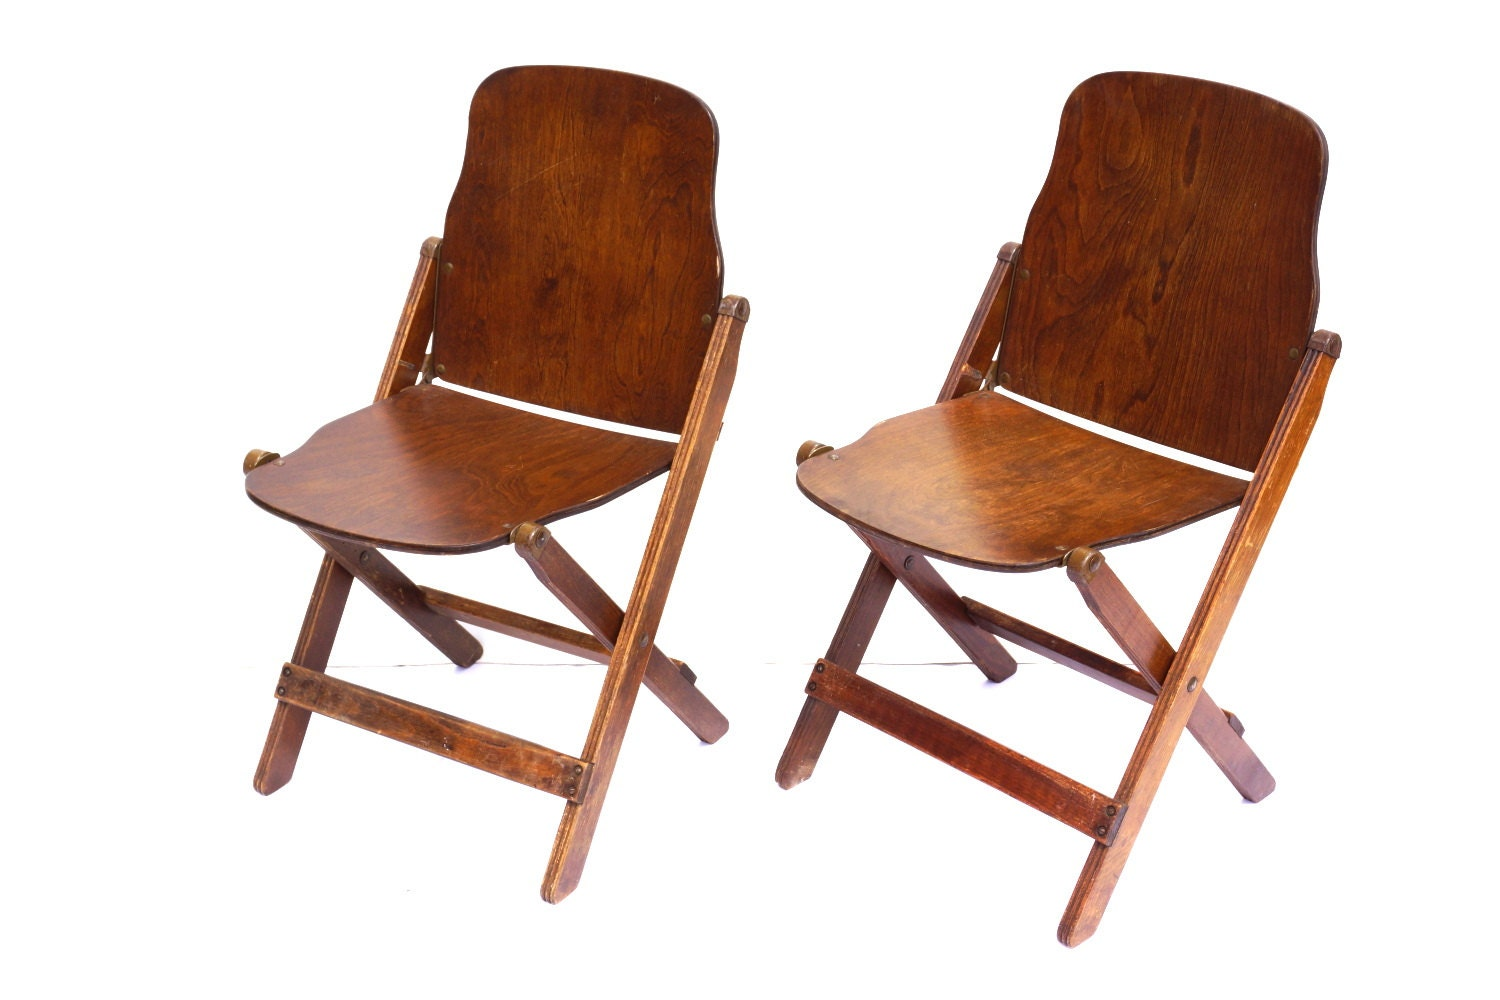 Foldable Wooden Chairs ~ Vintage antique wood folding chairs with brass hardware set